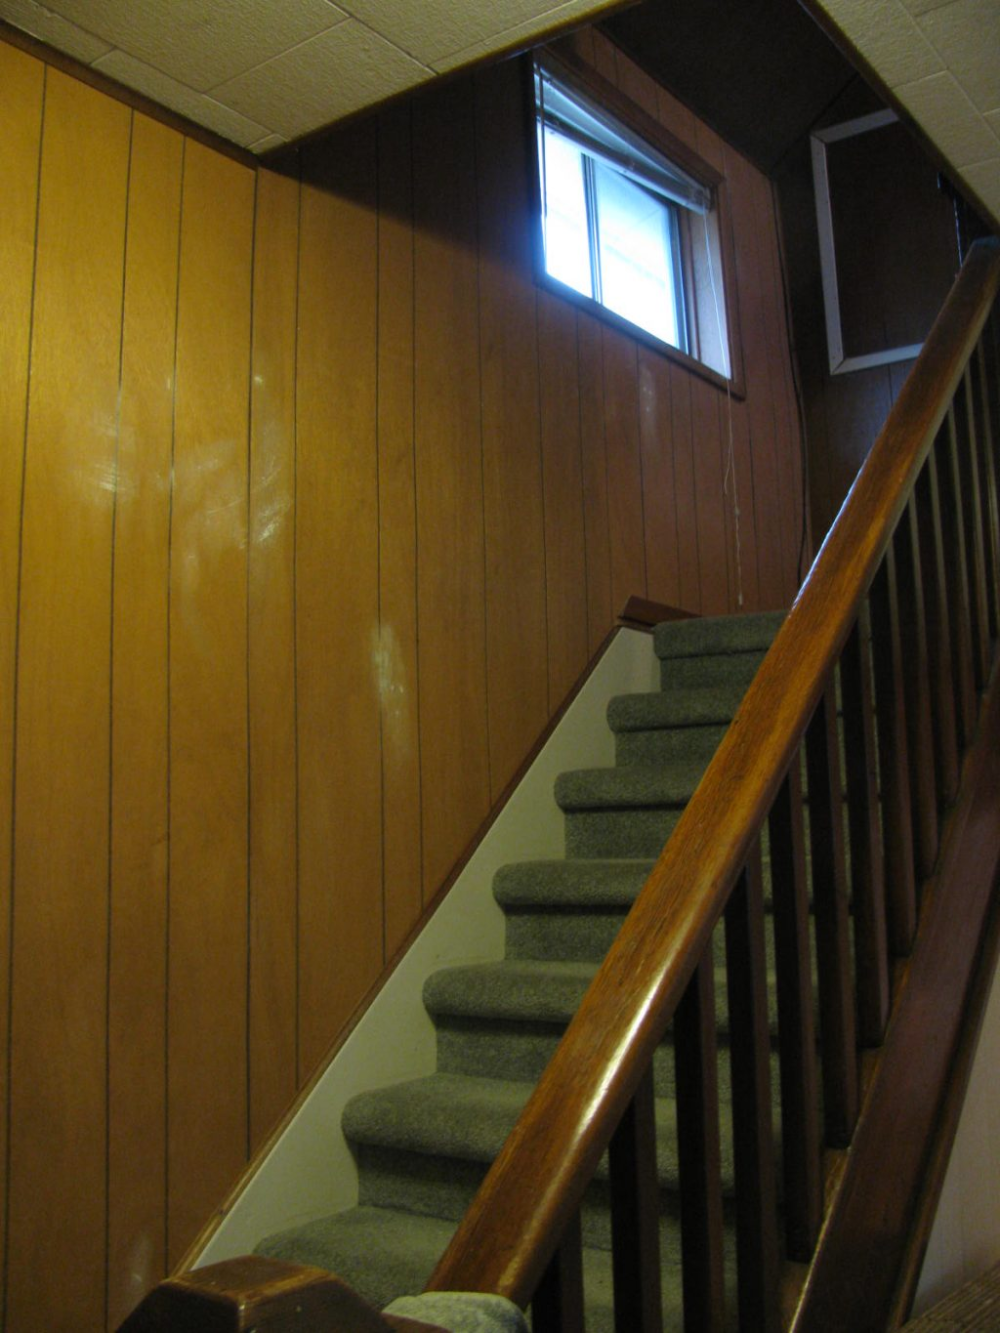 Paint Over Wood Paneling Walls: How To Paint Wood Paneling In 2020